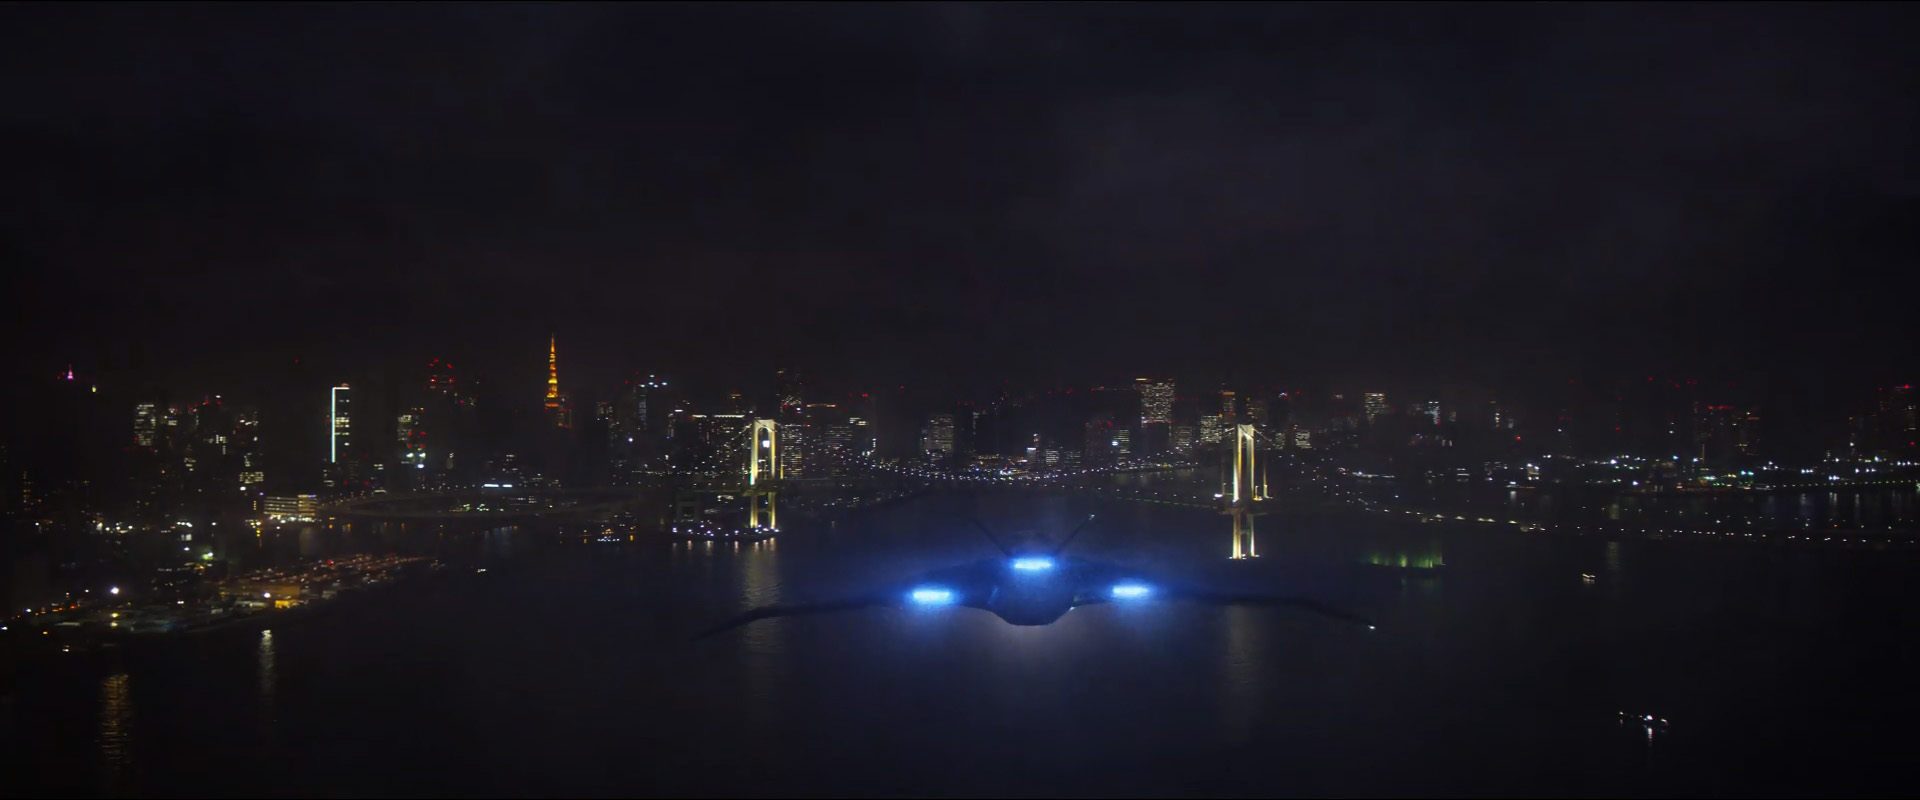 Avengers Endgame Brooklyn Bridge